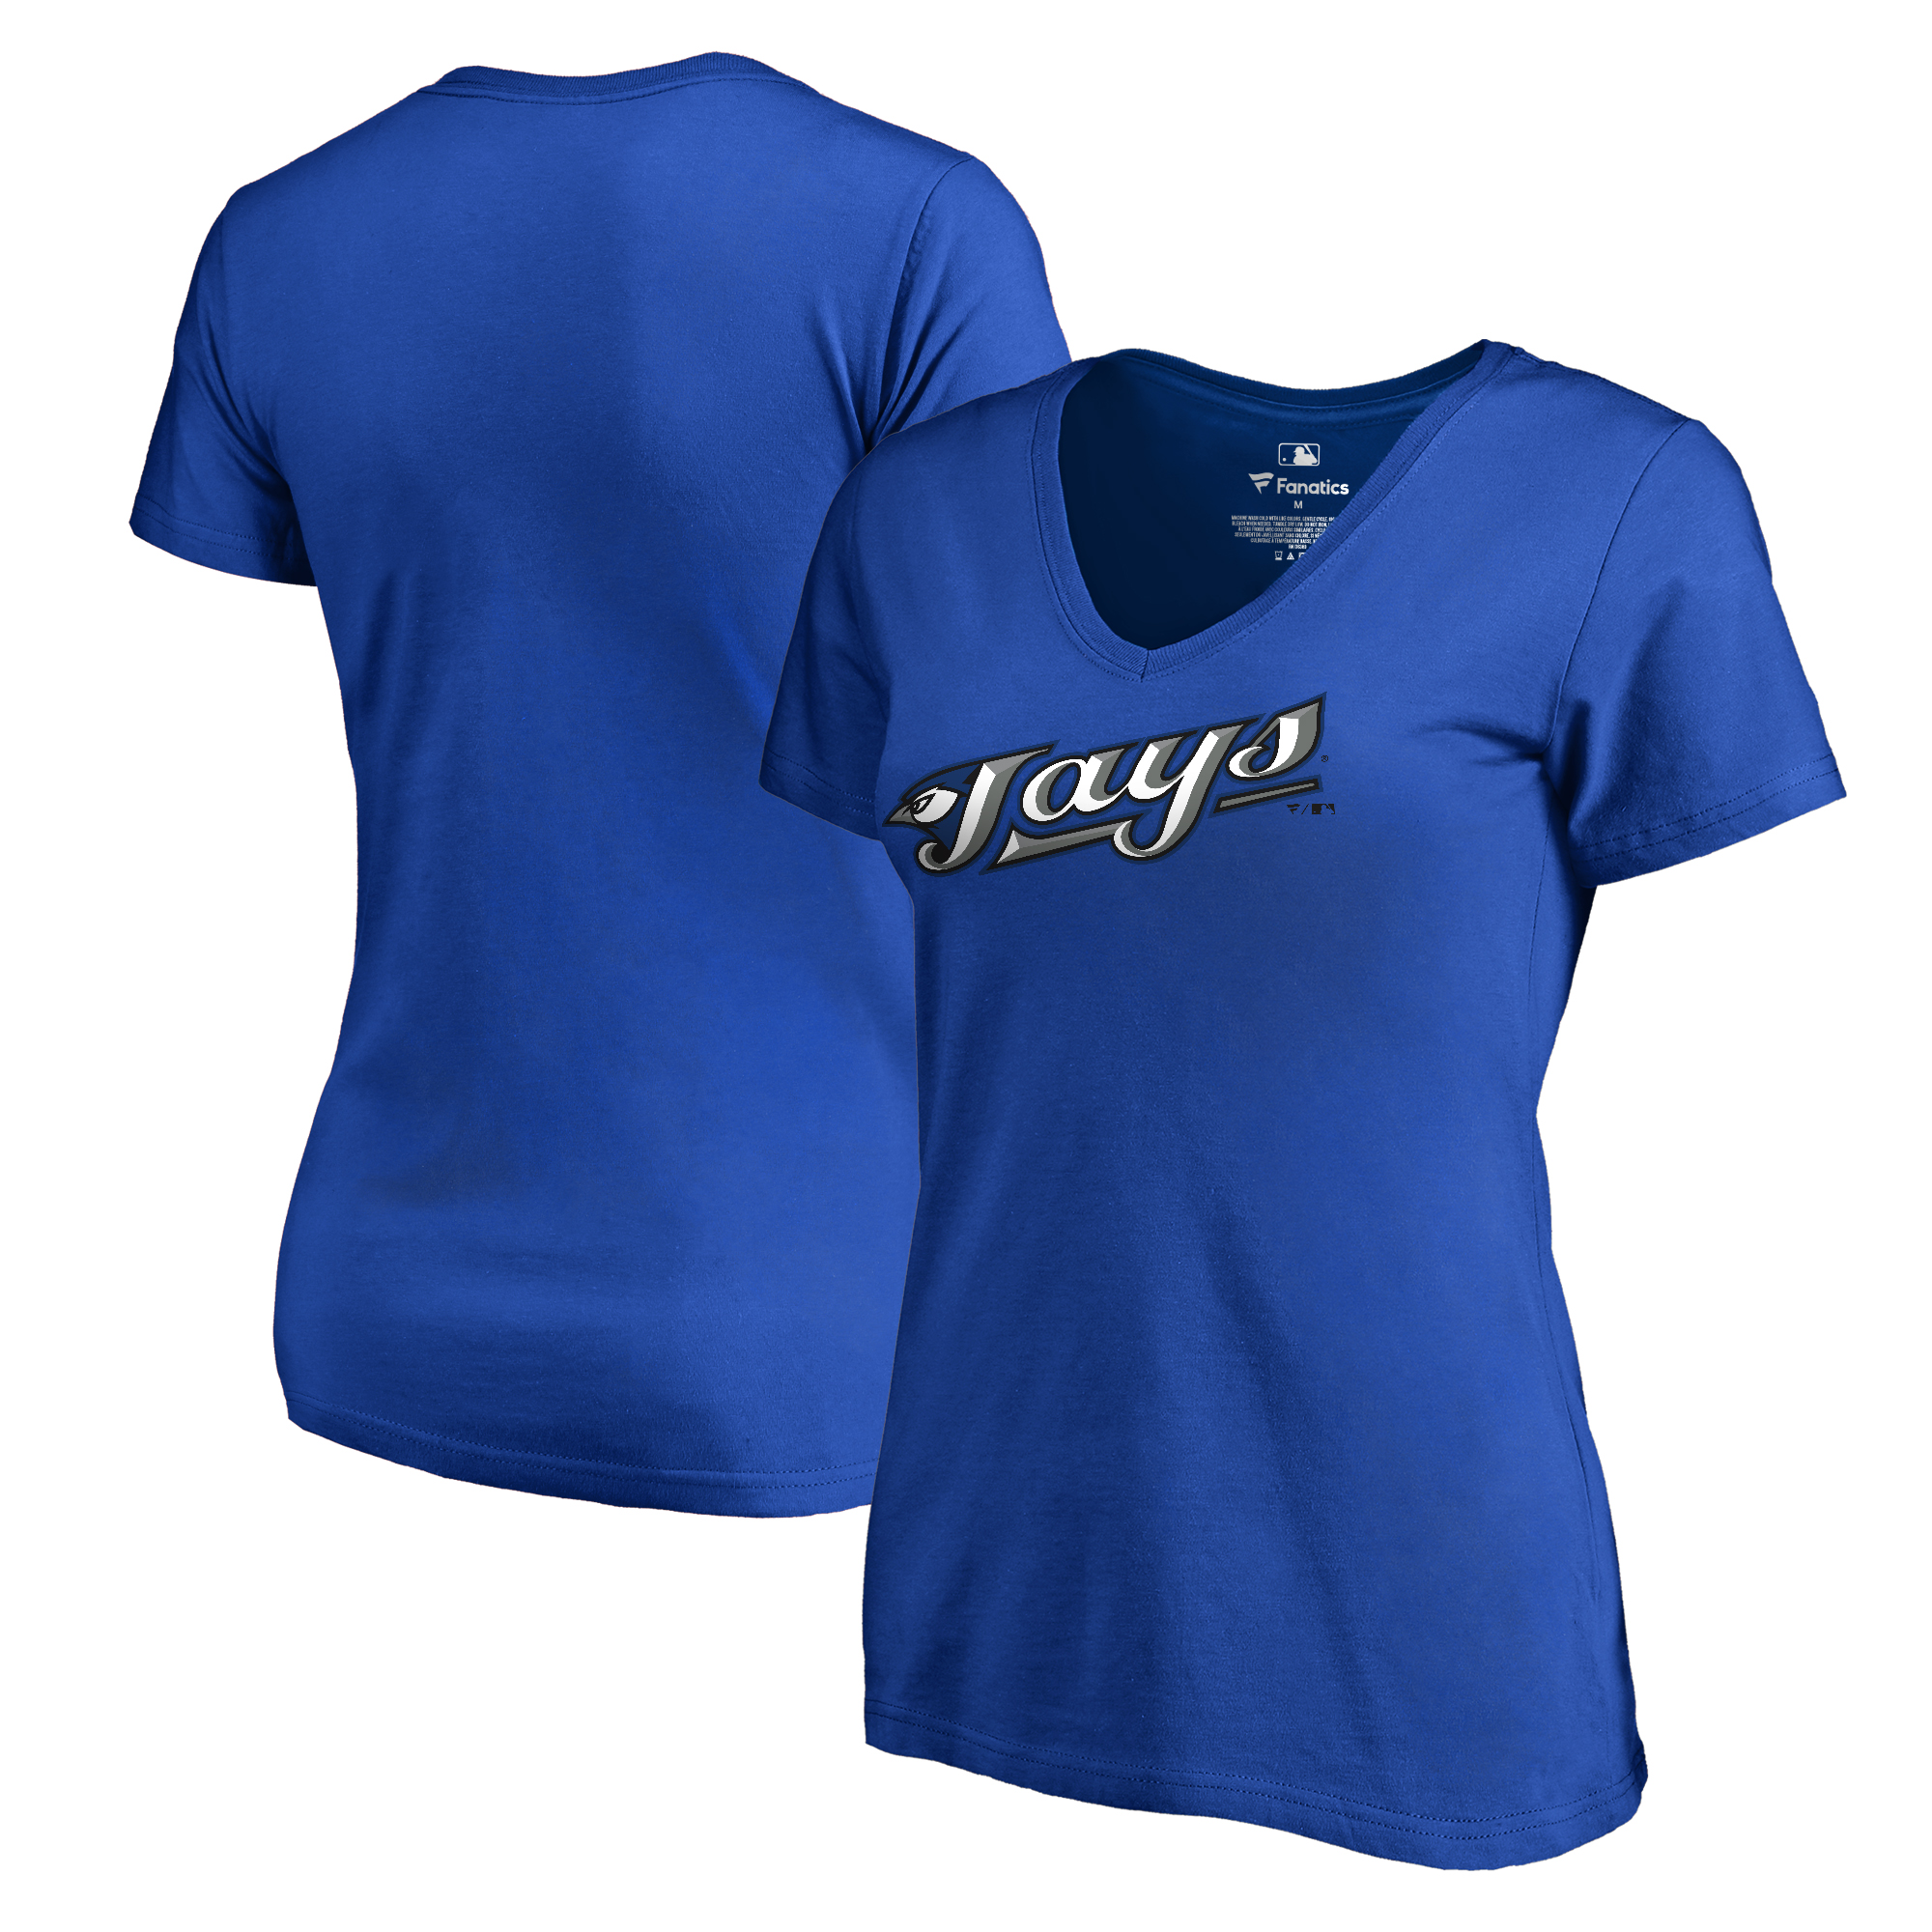 Toronto Blue Jays Fanatics Branded Women's Plus Sizes Cooperstown Collection Wahconah T-Shirt - Royal